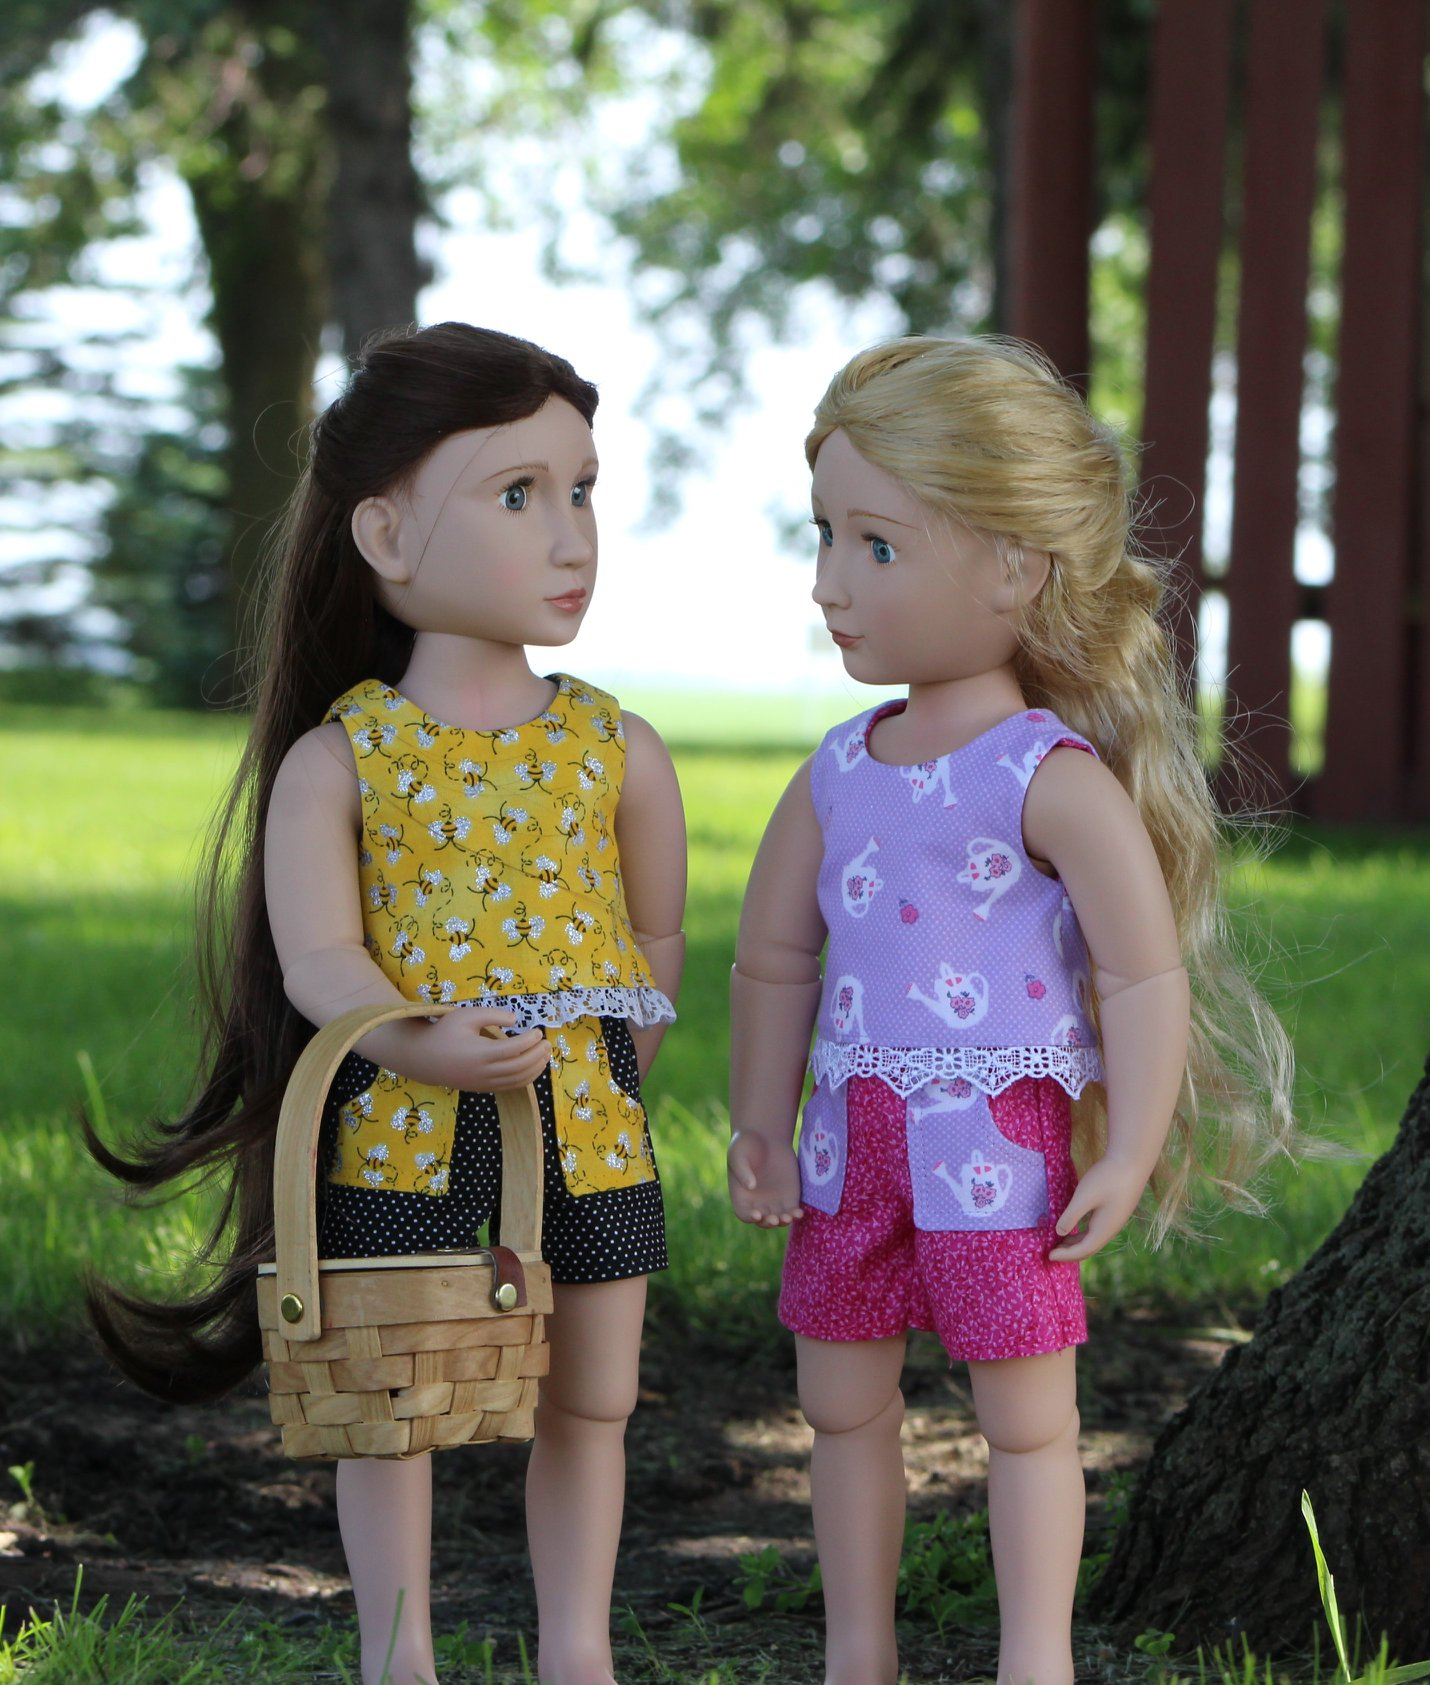 Sandbox Shorts and Popsicle Top sewing patterns for a Girl for All time dolls by Oh Sew Kat! Find more pdf digital printable patterns for dolls of all sizes in my etsy shop.